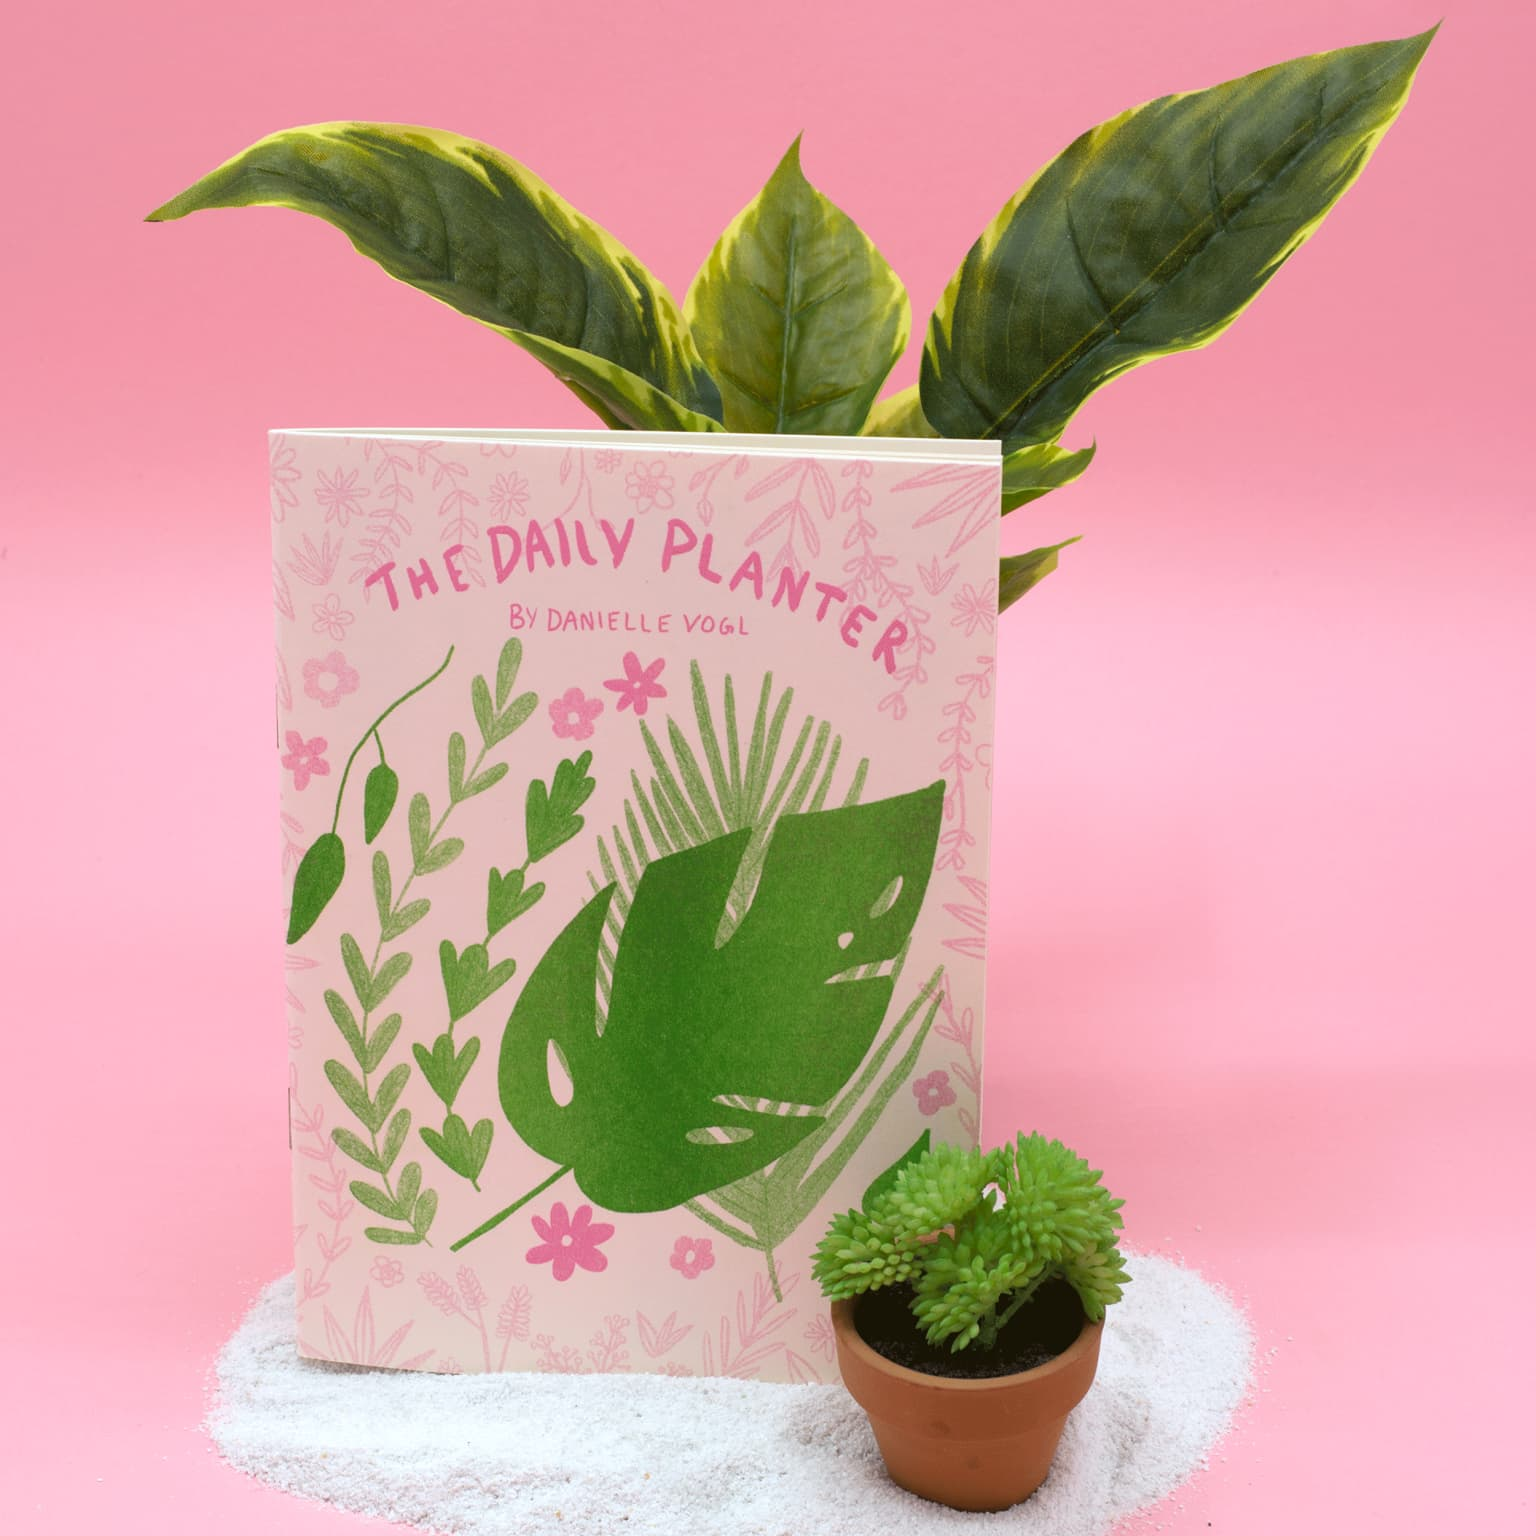 The Daily Planter Zine